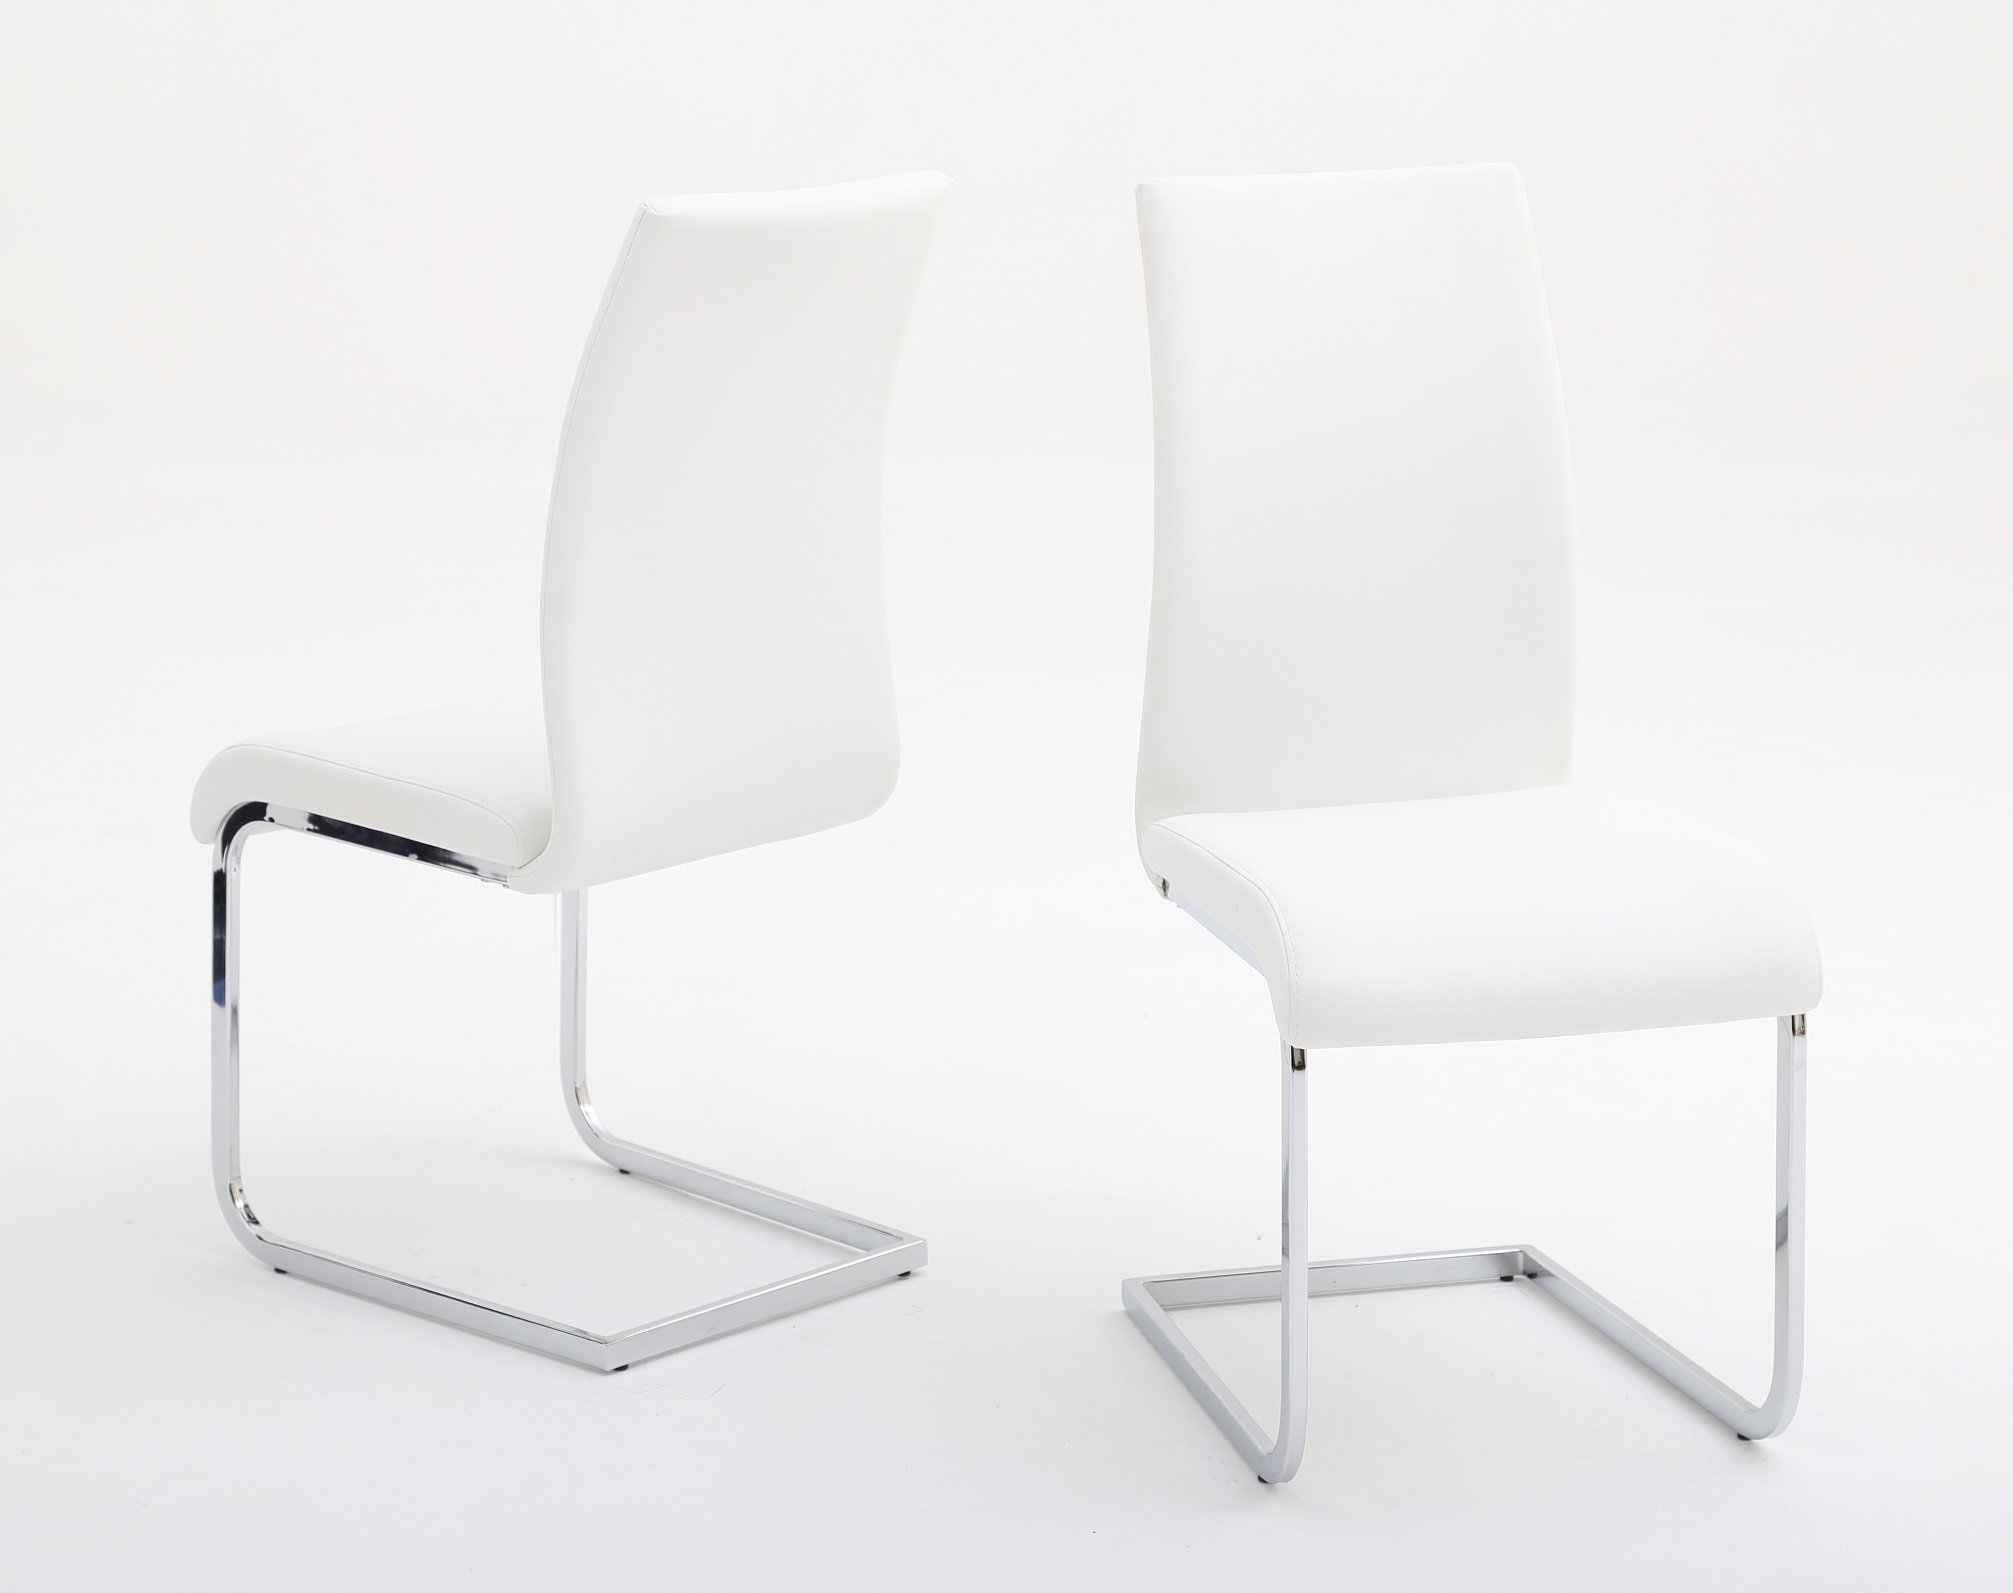 https://www.firstfurniture.co.uk/pub/media/catalog/product/p/a/paolo_chair_white.jpg